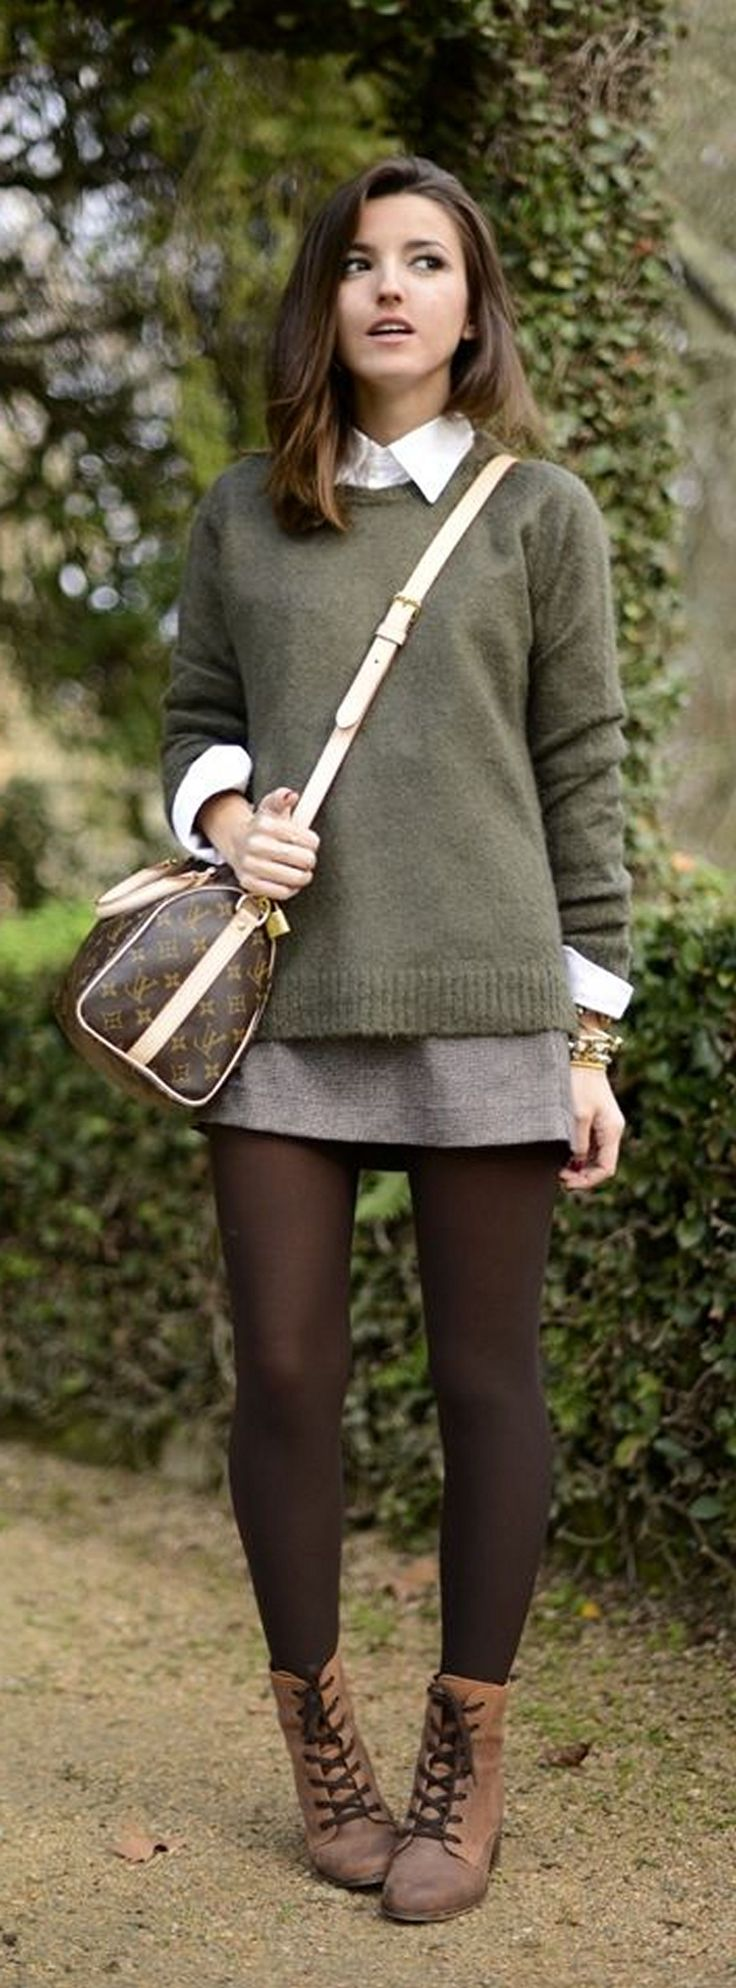 151 Sweaters Outfit Idea You Should Try This Year 3